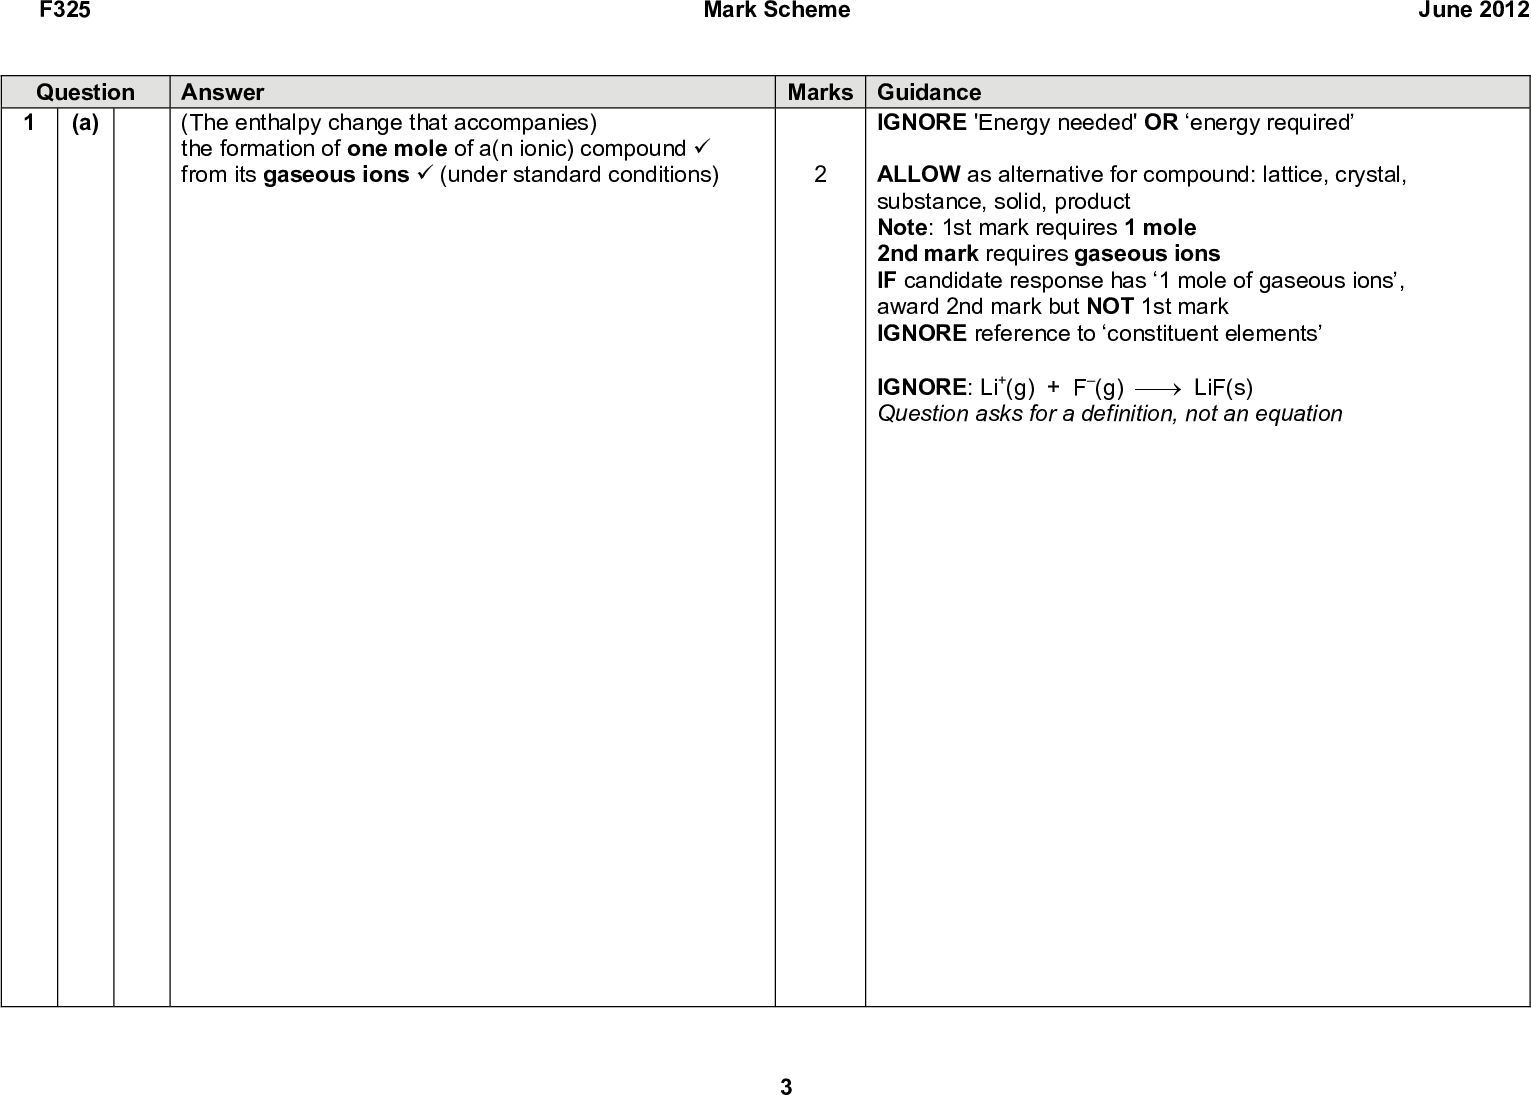 F325 Question 1 (a) Answer (The enthalpy change that accompanies) the formation of one mole of a(n ionic) compound (cid:57) from its gaseous ions (cid:57) (under standard conditions) Mark Scheme June 2012 Marks Guidance IGNORE 'Energy needed' OR energy required ALLOW as alternative for compound: lattice, crystal, substance, solid, product Note: 1st mark requires 1 mole 2nd mark requires gaseous ions IF candidate response has 1 mole of gaseous ions, award 2nd mark but NOT 1st mark IGNORE reference to constituent elements IGNORE: Li+(g) + F(g) (cid:127)(cid:111) LiF(s) Question asks for a definition, not an equation<br />  F325 Mark Scheme June 2012 Answer 1. Mark Line 1 first as below (right or wrong) 2. Mark Line 4 as below (right or wrong) 3. Mark difference in species on Line 1 and Line 2 MUST match one of the enthalpy changes in the table: Marks Guidance ANNOTATIONS MUST BE USED --------------------------------------------------- ALLOW marks by ECF as follows: Follow order at top of Answer column atomisation of Li(s) atomisation of F2(g) first ionisation energy of Li(g) 4. Repeat for differences on Line 2 and Line 3 Li+(g) + F(g) + e (cid:57) Li(g) + F(g) (cid:57) Li(g) + 1/2 2 F (g (cid:57) Li(s) + 1/2F2(g) (cid:57) Correct species and state symbols required for all marks IF an electron has formed, it MUST be shown as e OR e ALLOW atomisation of F2(g) before atomisation of Li(s): 4 Li+(g) + F(g) + e (cid:57) Li(g) + F(g) (cid:57) Li(s ) + F(g) (cid:57) F2(g Li(s) + 1/2 (cid:57) ALLOW ionisation of Li(g) before atomisation of F2(g): 4 Li+(g) + F(g) + e (cid:57) Li+(g) + e + 1/2F2(g) + 1/2F2(g) (cid:57) Li(g) (cid:57) Li(s ) + 1/2F2(g) 1 e required for marks involving Line 3 AND Line 4 (cid:57) Missing e and rest correct 3 marks Common errors Line 4: Line 1: e.g., for F(g), F(s), F(l), F(aq), F2(g) DO NOT ALLOW Fl when first seen but credit subsequently IF F2(g) is NOT shown [Line 4 and Li(s) (cid:198) Li(g) ] 2 max Question 1 (b) (i)<br />  F325 Mark Scheme June 